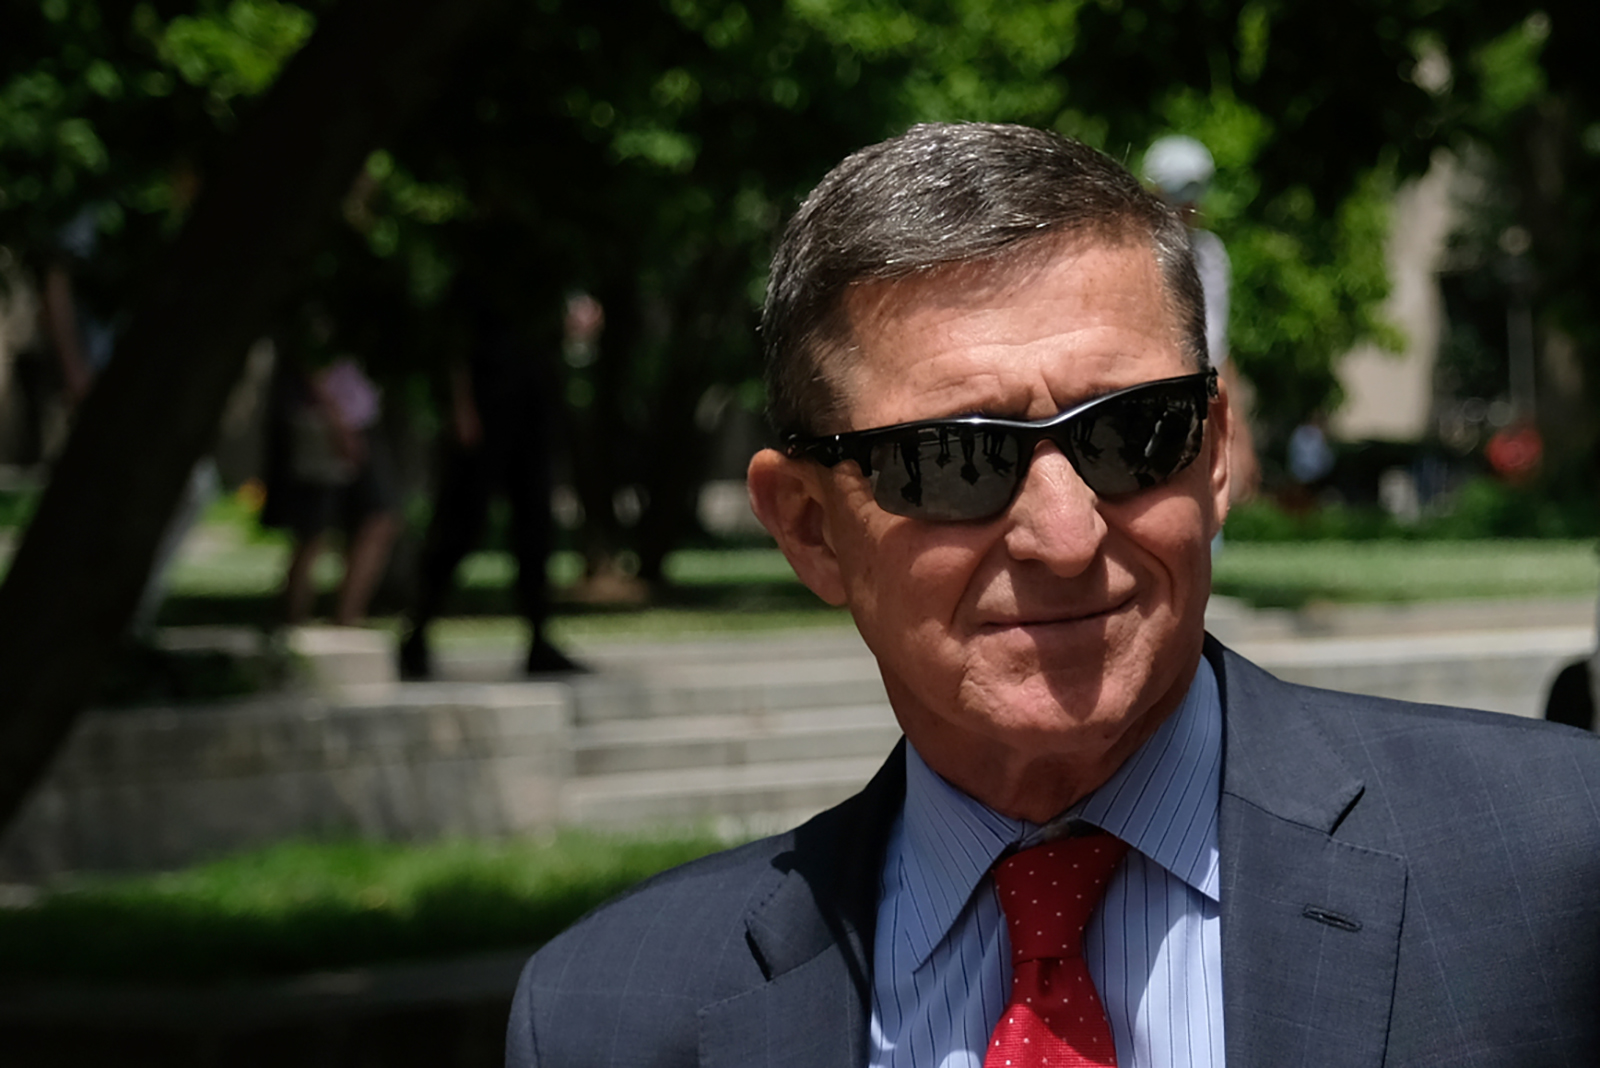 Flynn case now paused while full appeals court considers review